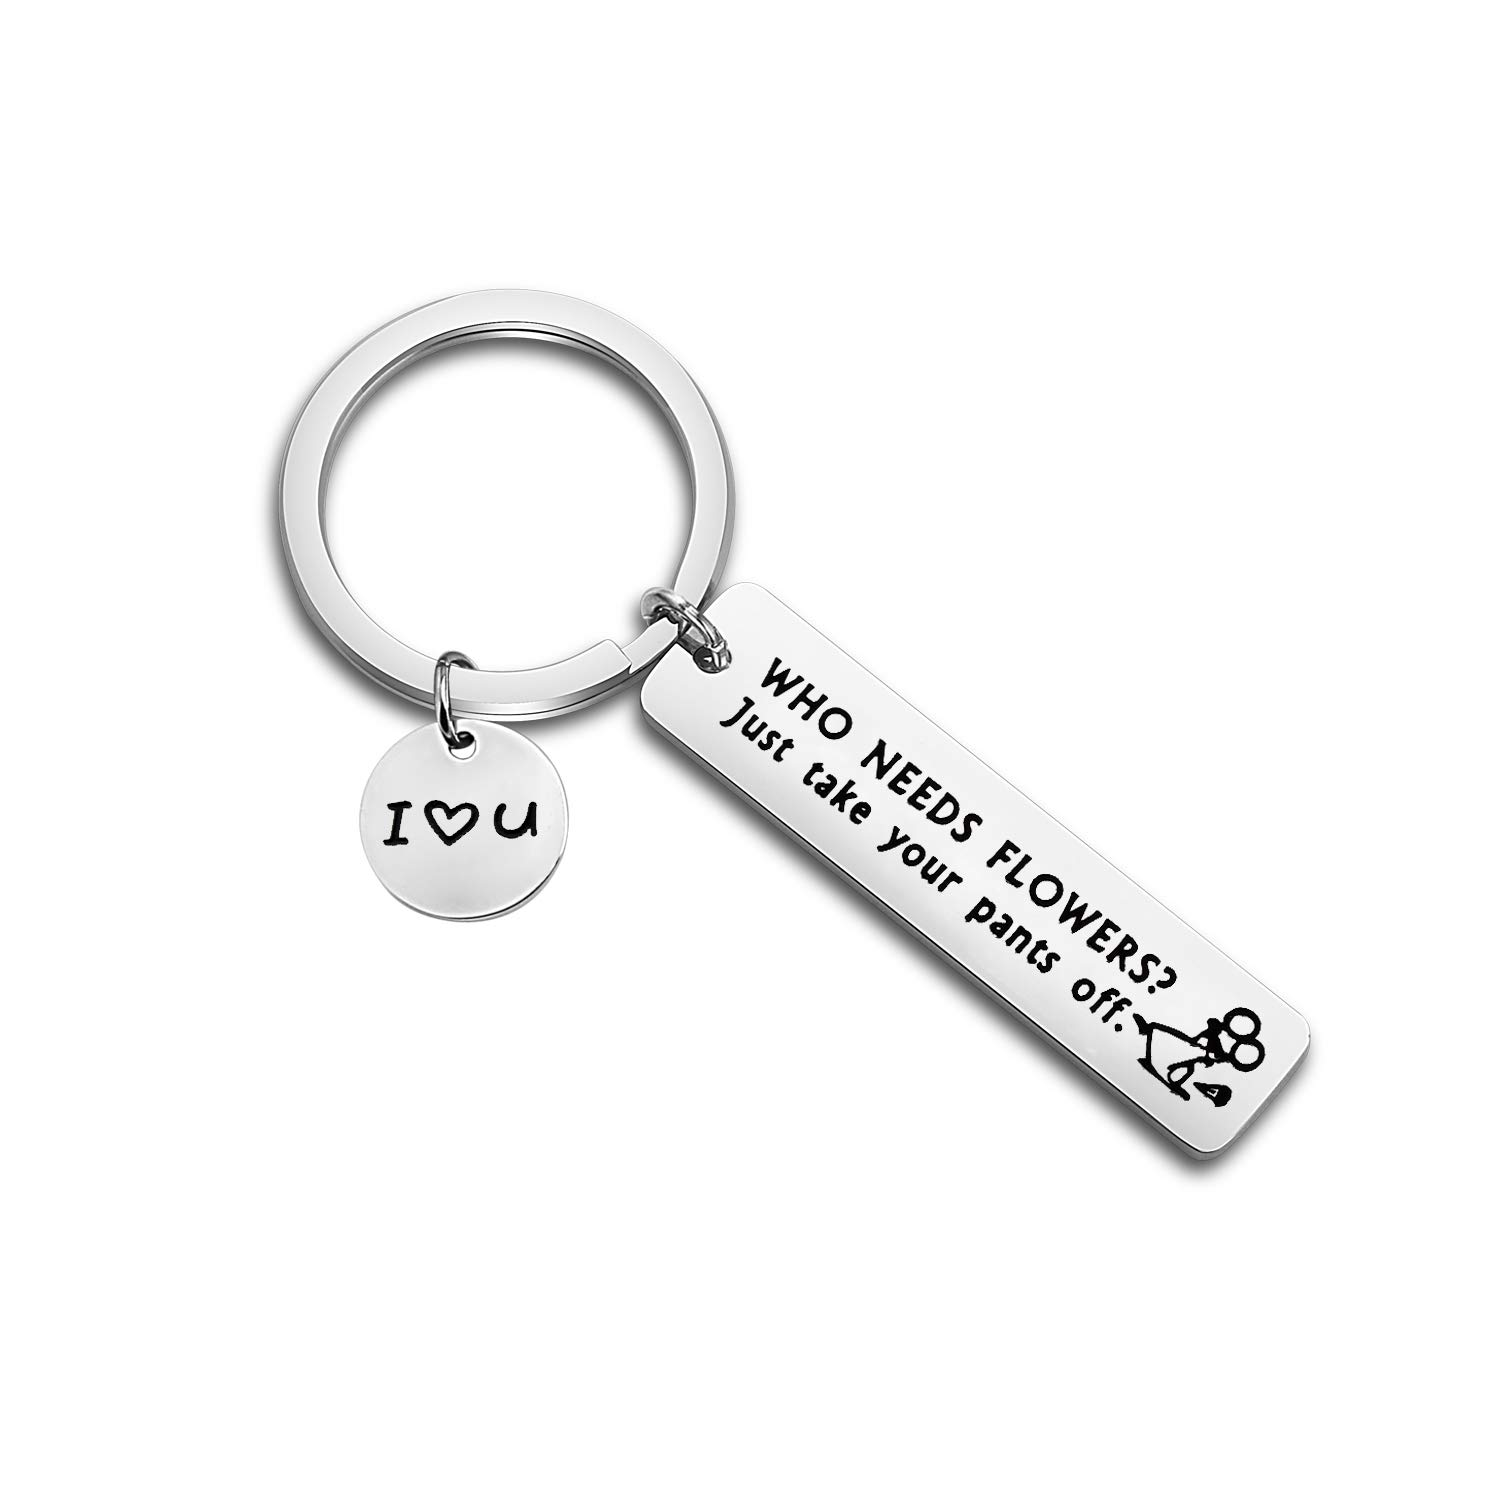 Flowers Keychain TGBJE Funny Gift for Boyfriend Husband Who Needs Flowers Just Take Your Pants Off Keychain Naughty Gift Adult Humor Gift